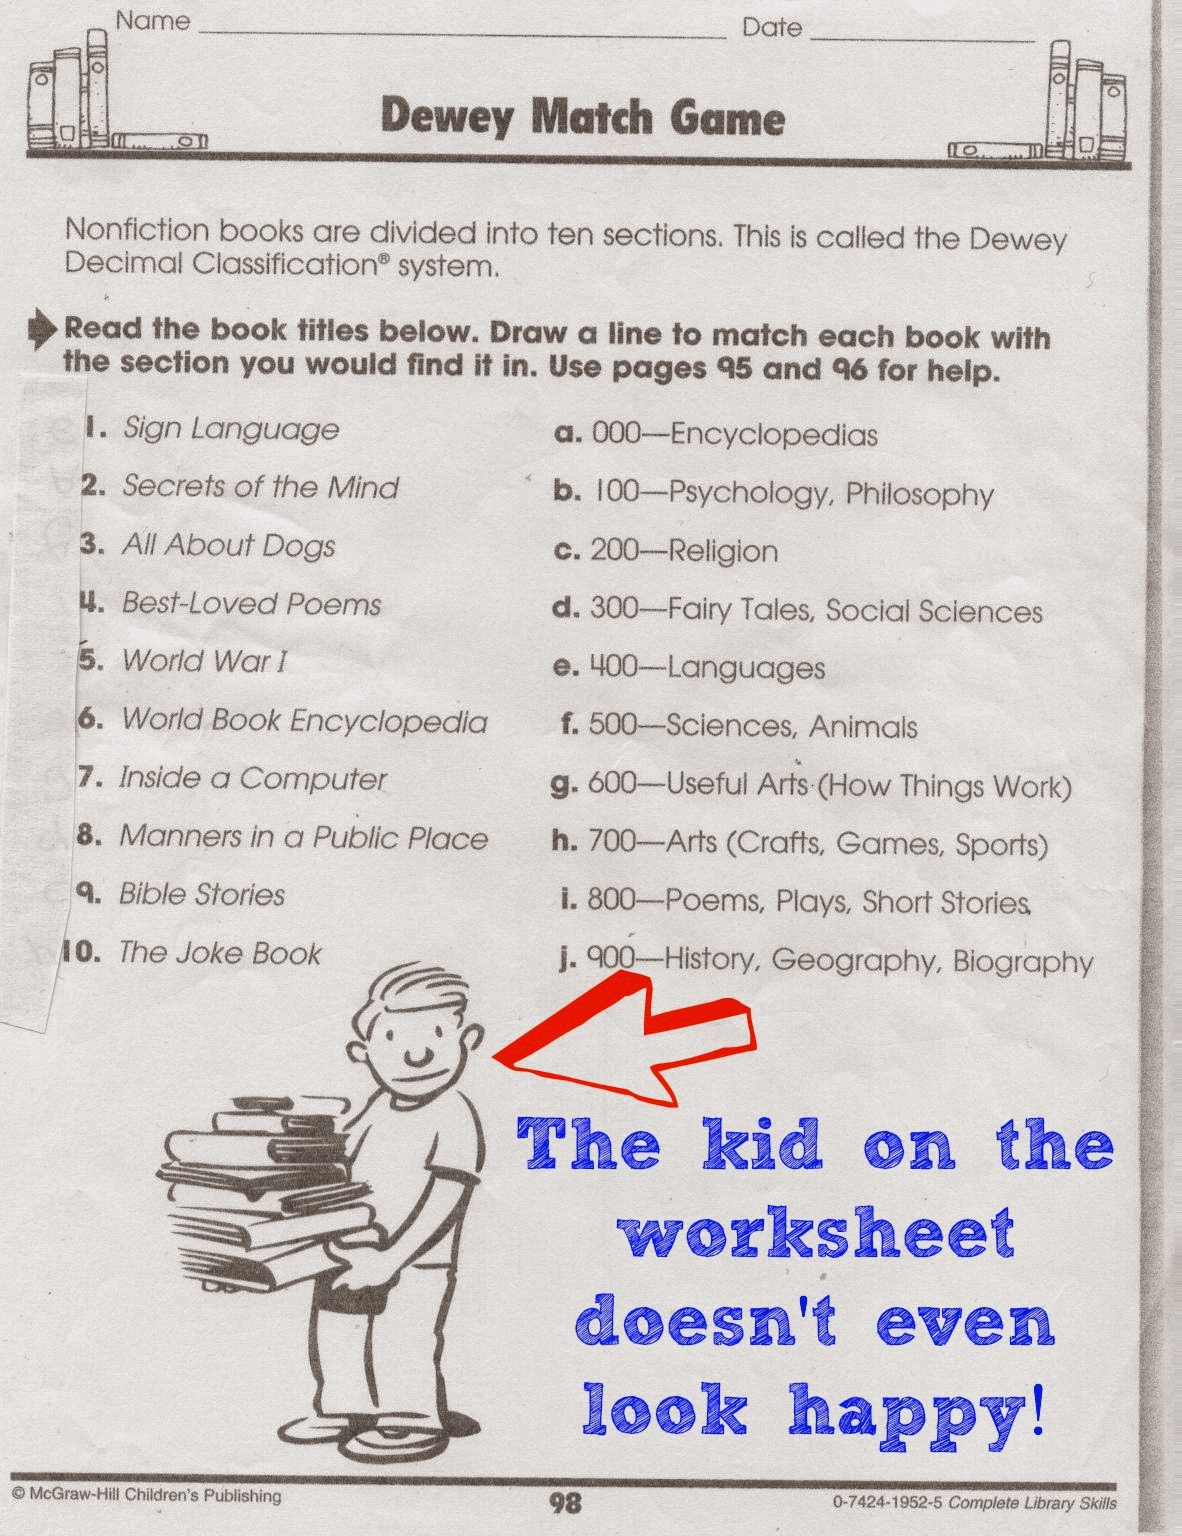 Workbooks world war 1 worksheets : The Absolutely True Adventures of a School Librarian: What's Your ...